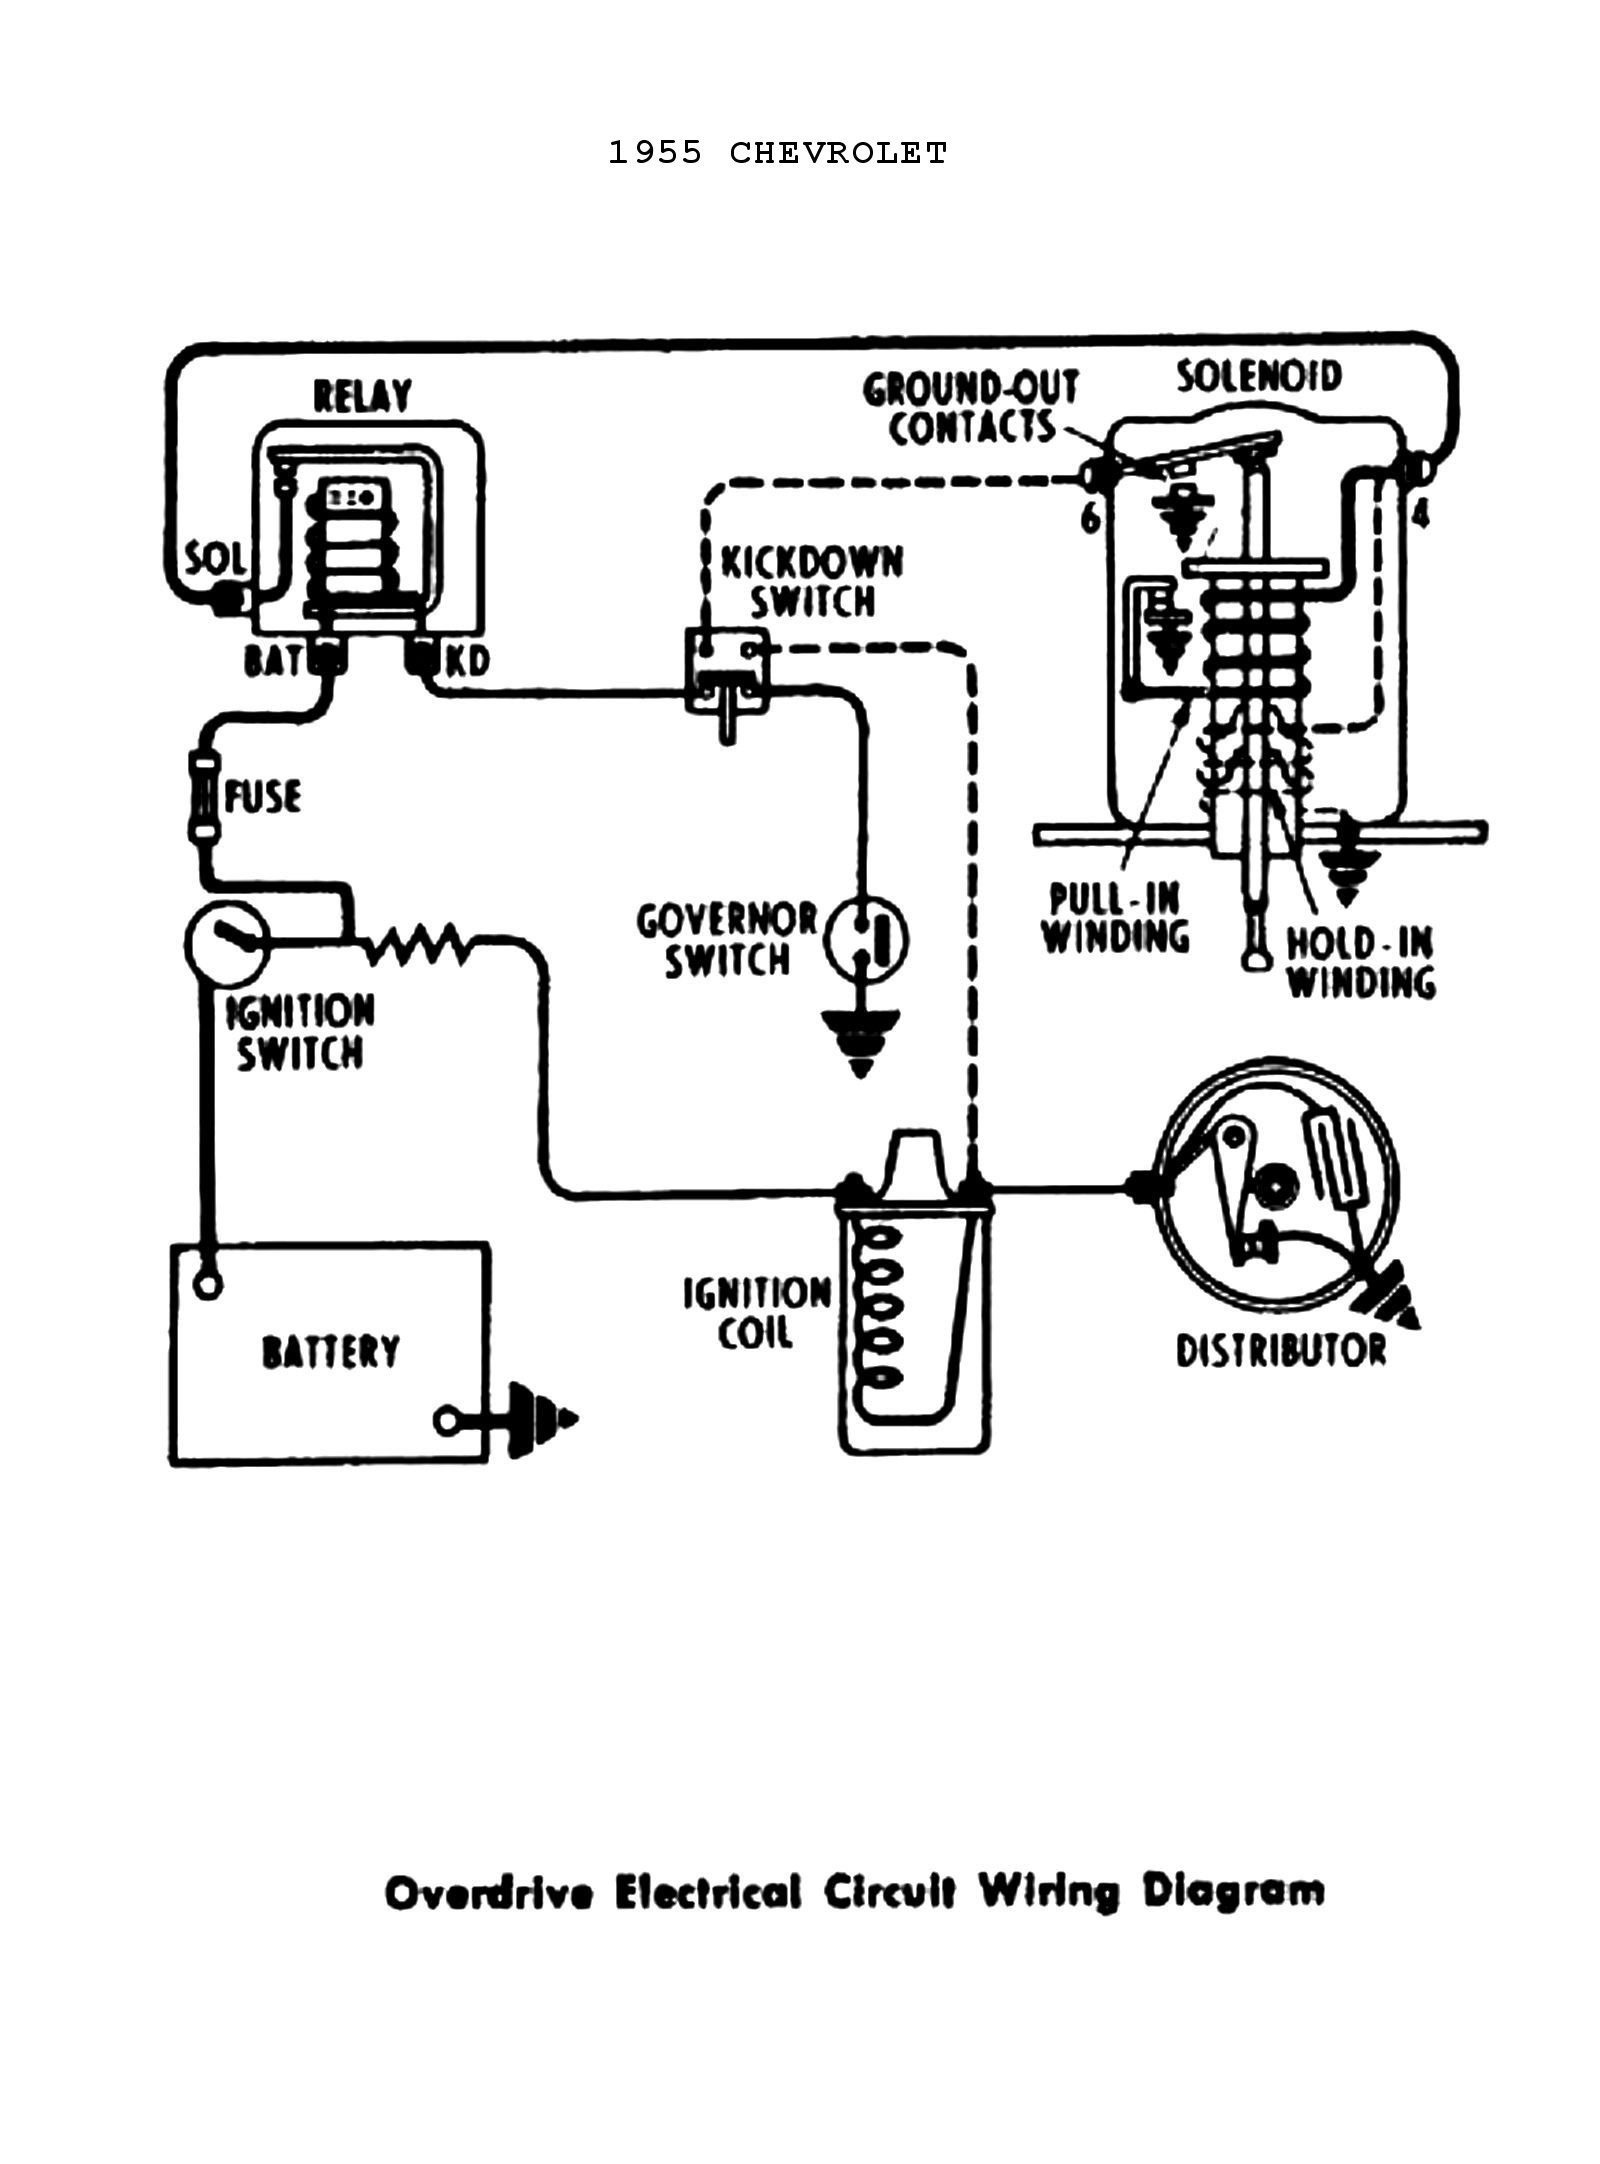 57 Thunderbird Ignition Switch Wiring Diagram Library 1964 1955 Www Topsimages Com 1957 T Bird E Series